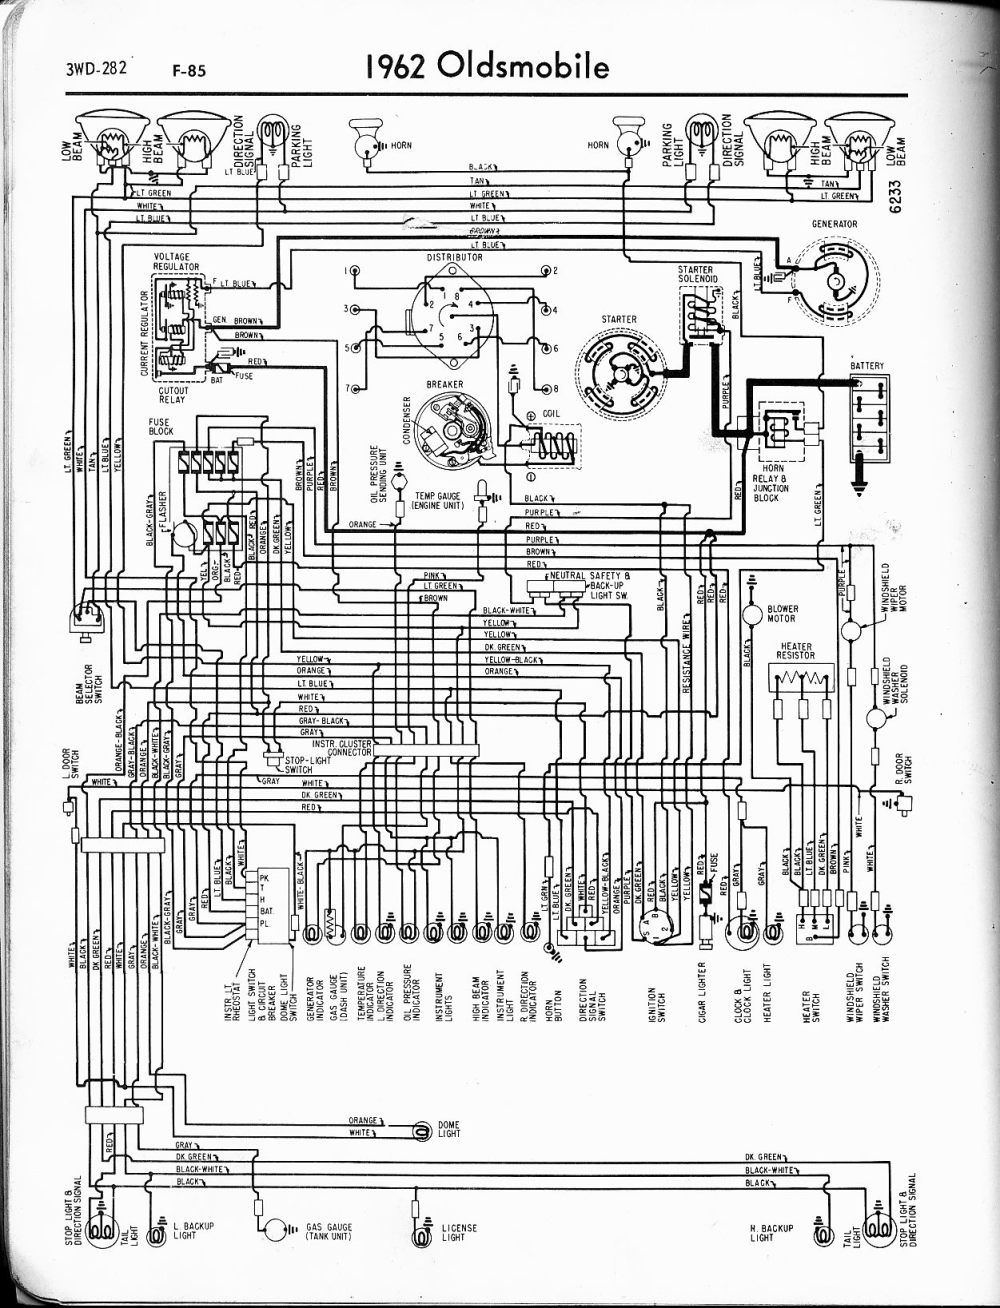 medium resolution of oldsmobile wiring diagrams the old car manual project1962 oldsmobile wiring diagram 2